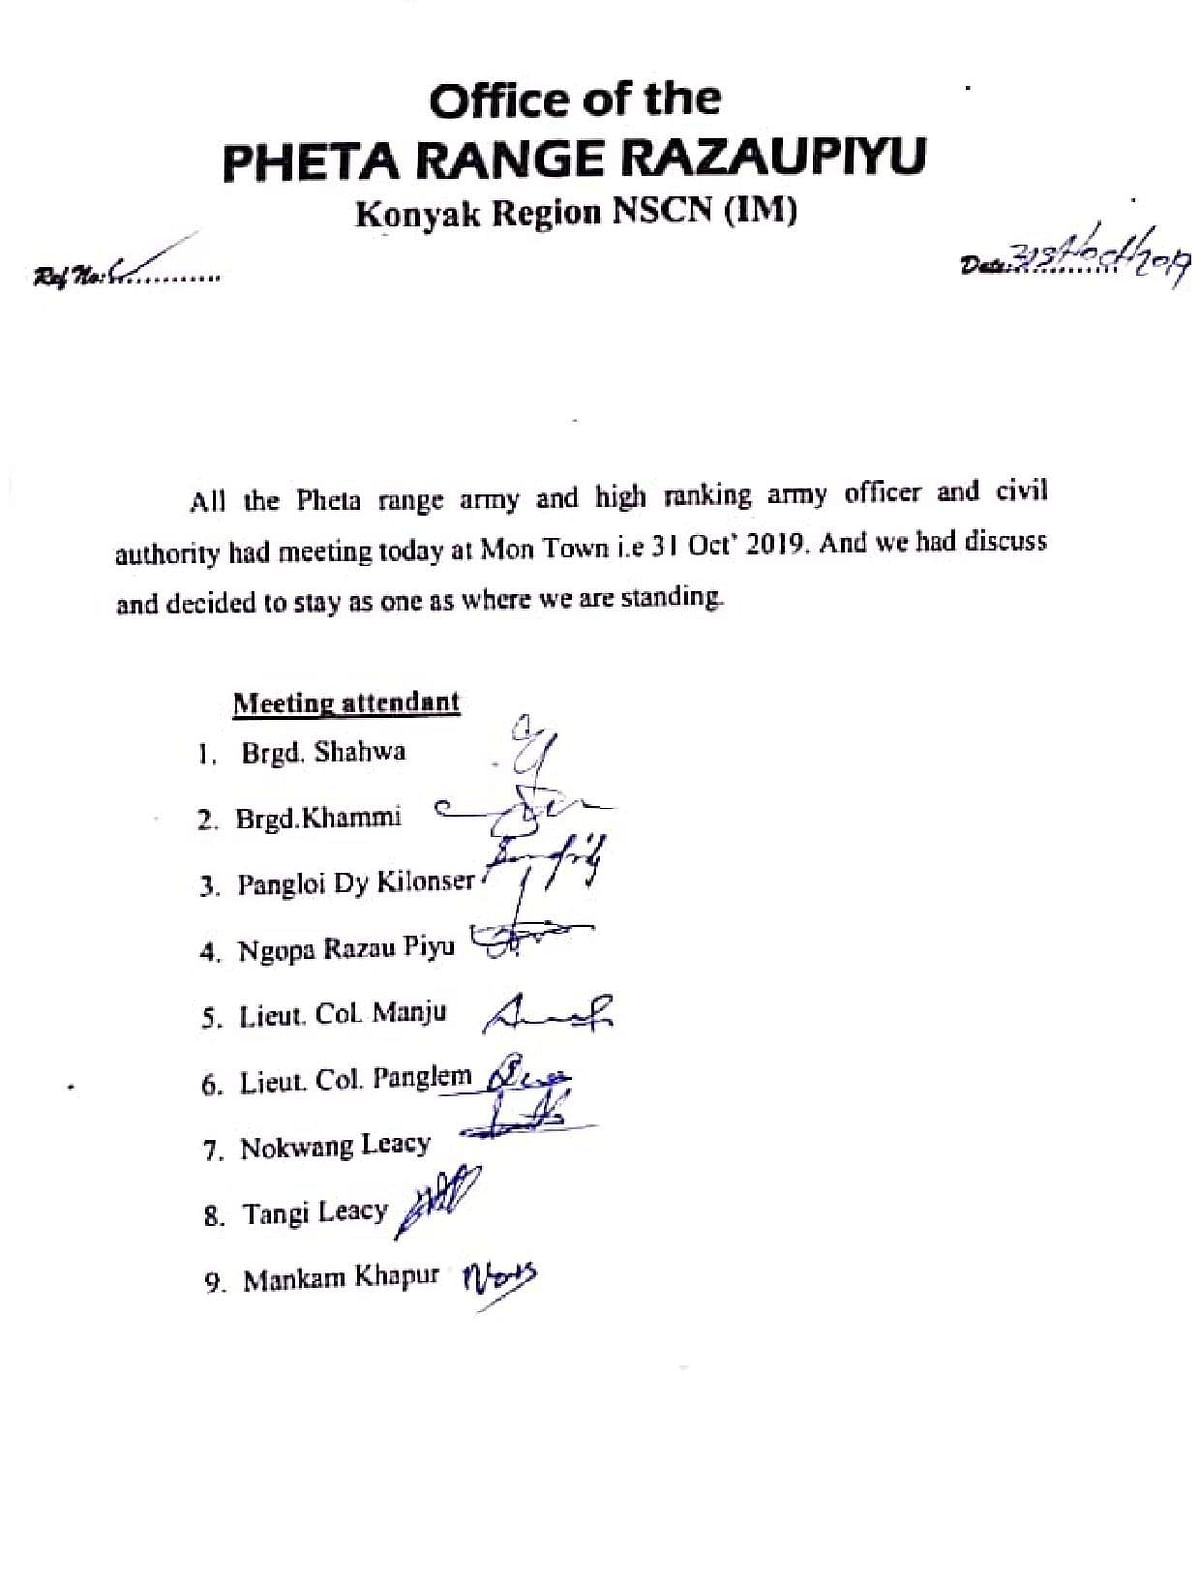 A statement released by the Pheta Range Razaupiyu Konyak Region of NSCN-IM on Thursday